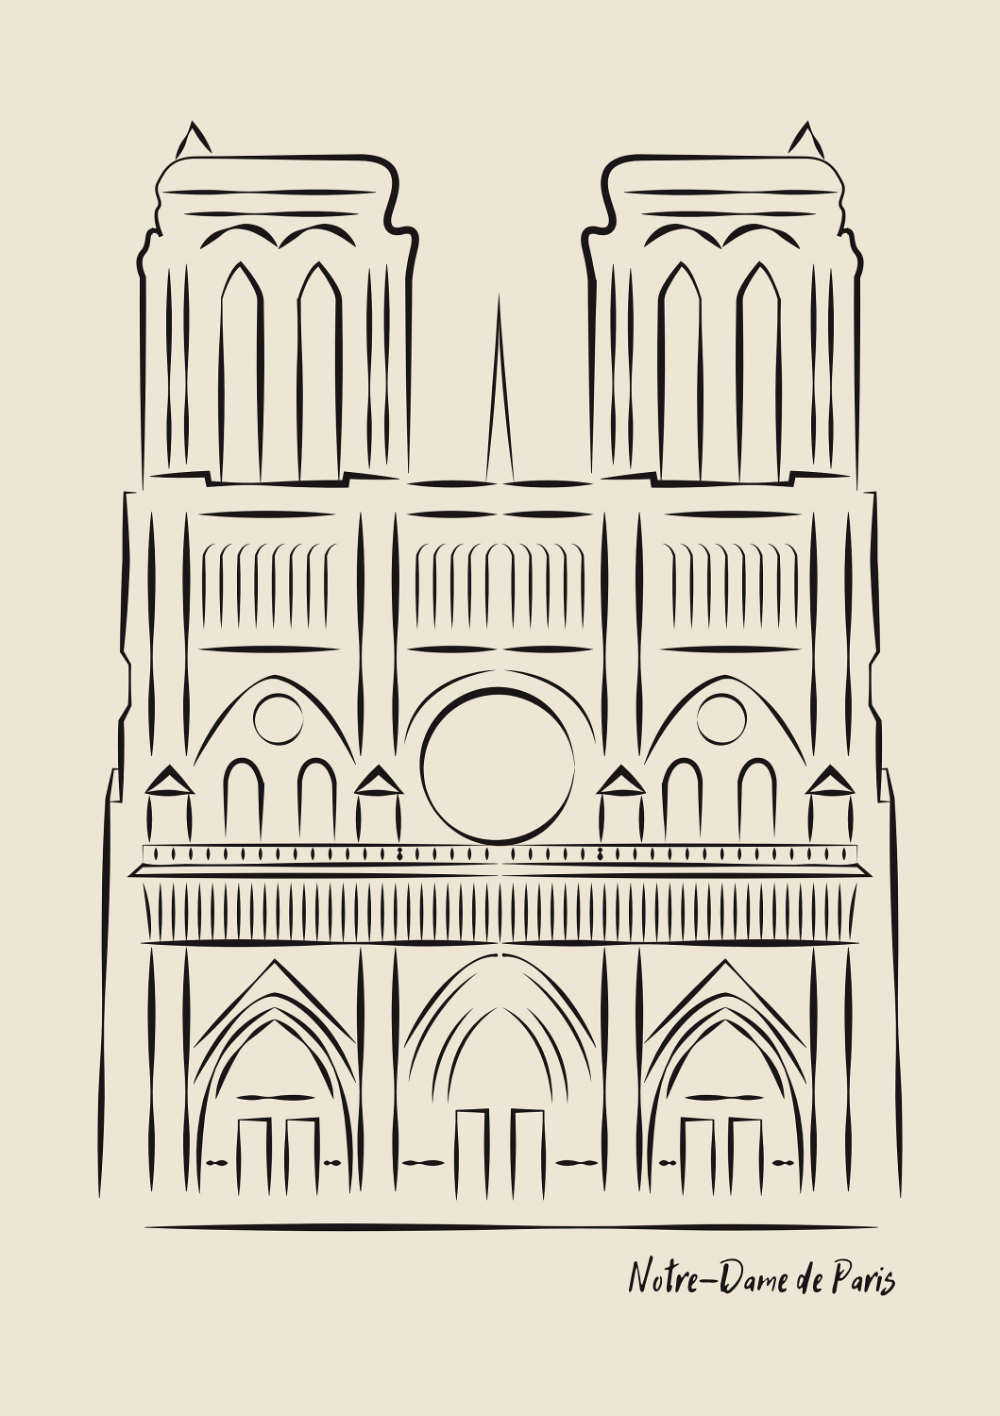 Notre Dame Cathedral Print Framed Wall Art Notre Dame Photo Notre Dame Poster Black White Vi Original Art Prints Iconic Poster Architecture Drawing Art